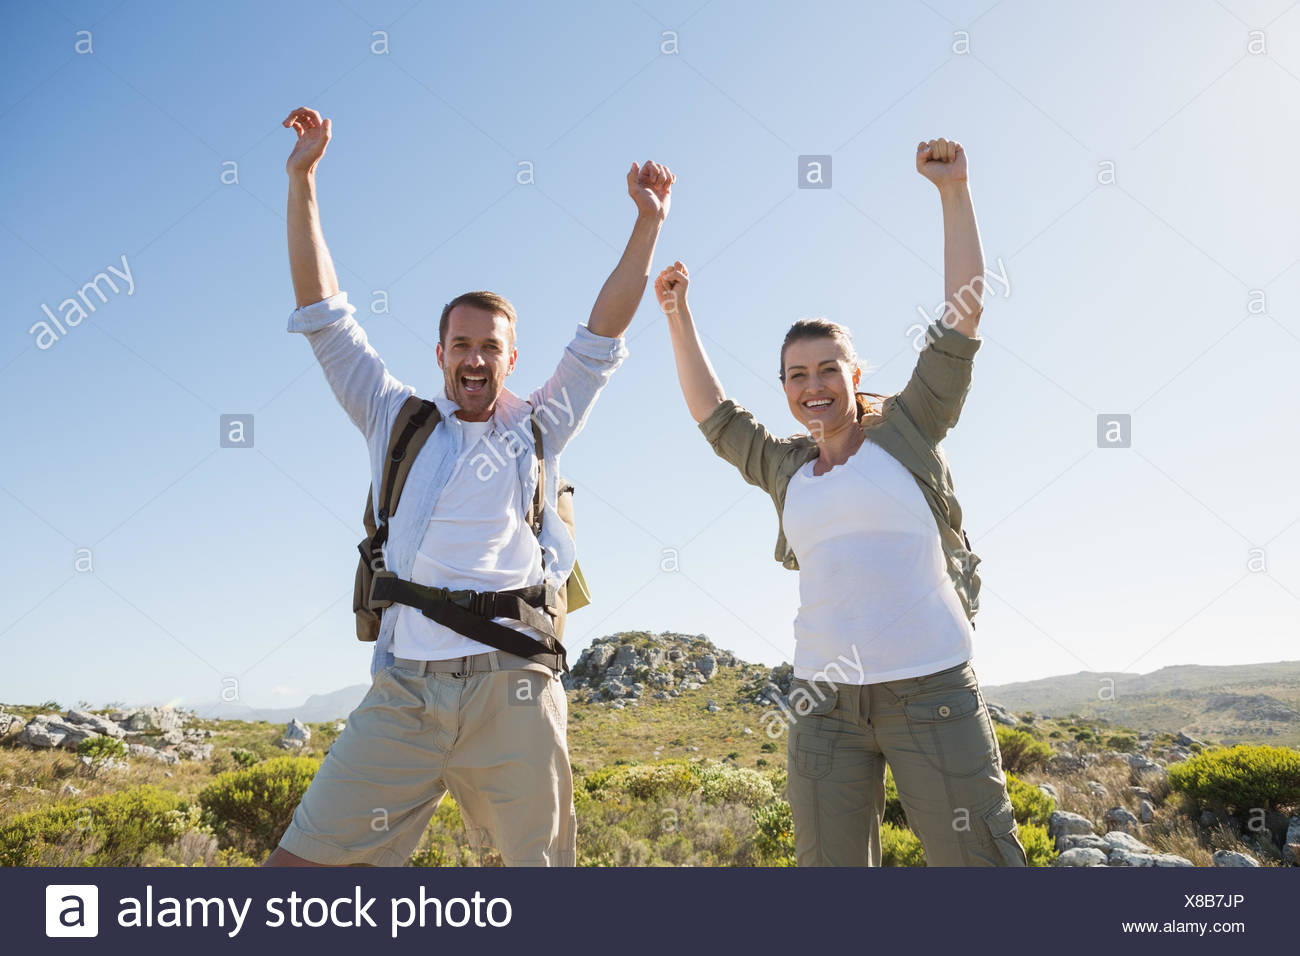 Hiking couple cheering at camera on mountain terrain - Stock Image